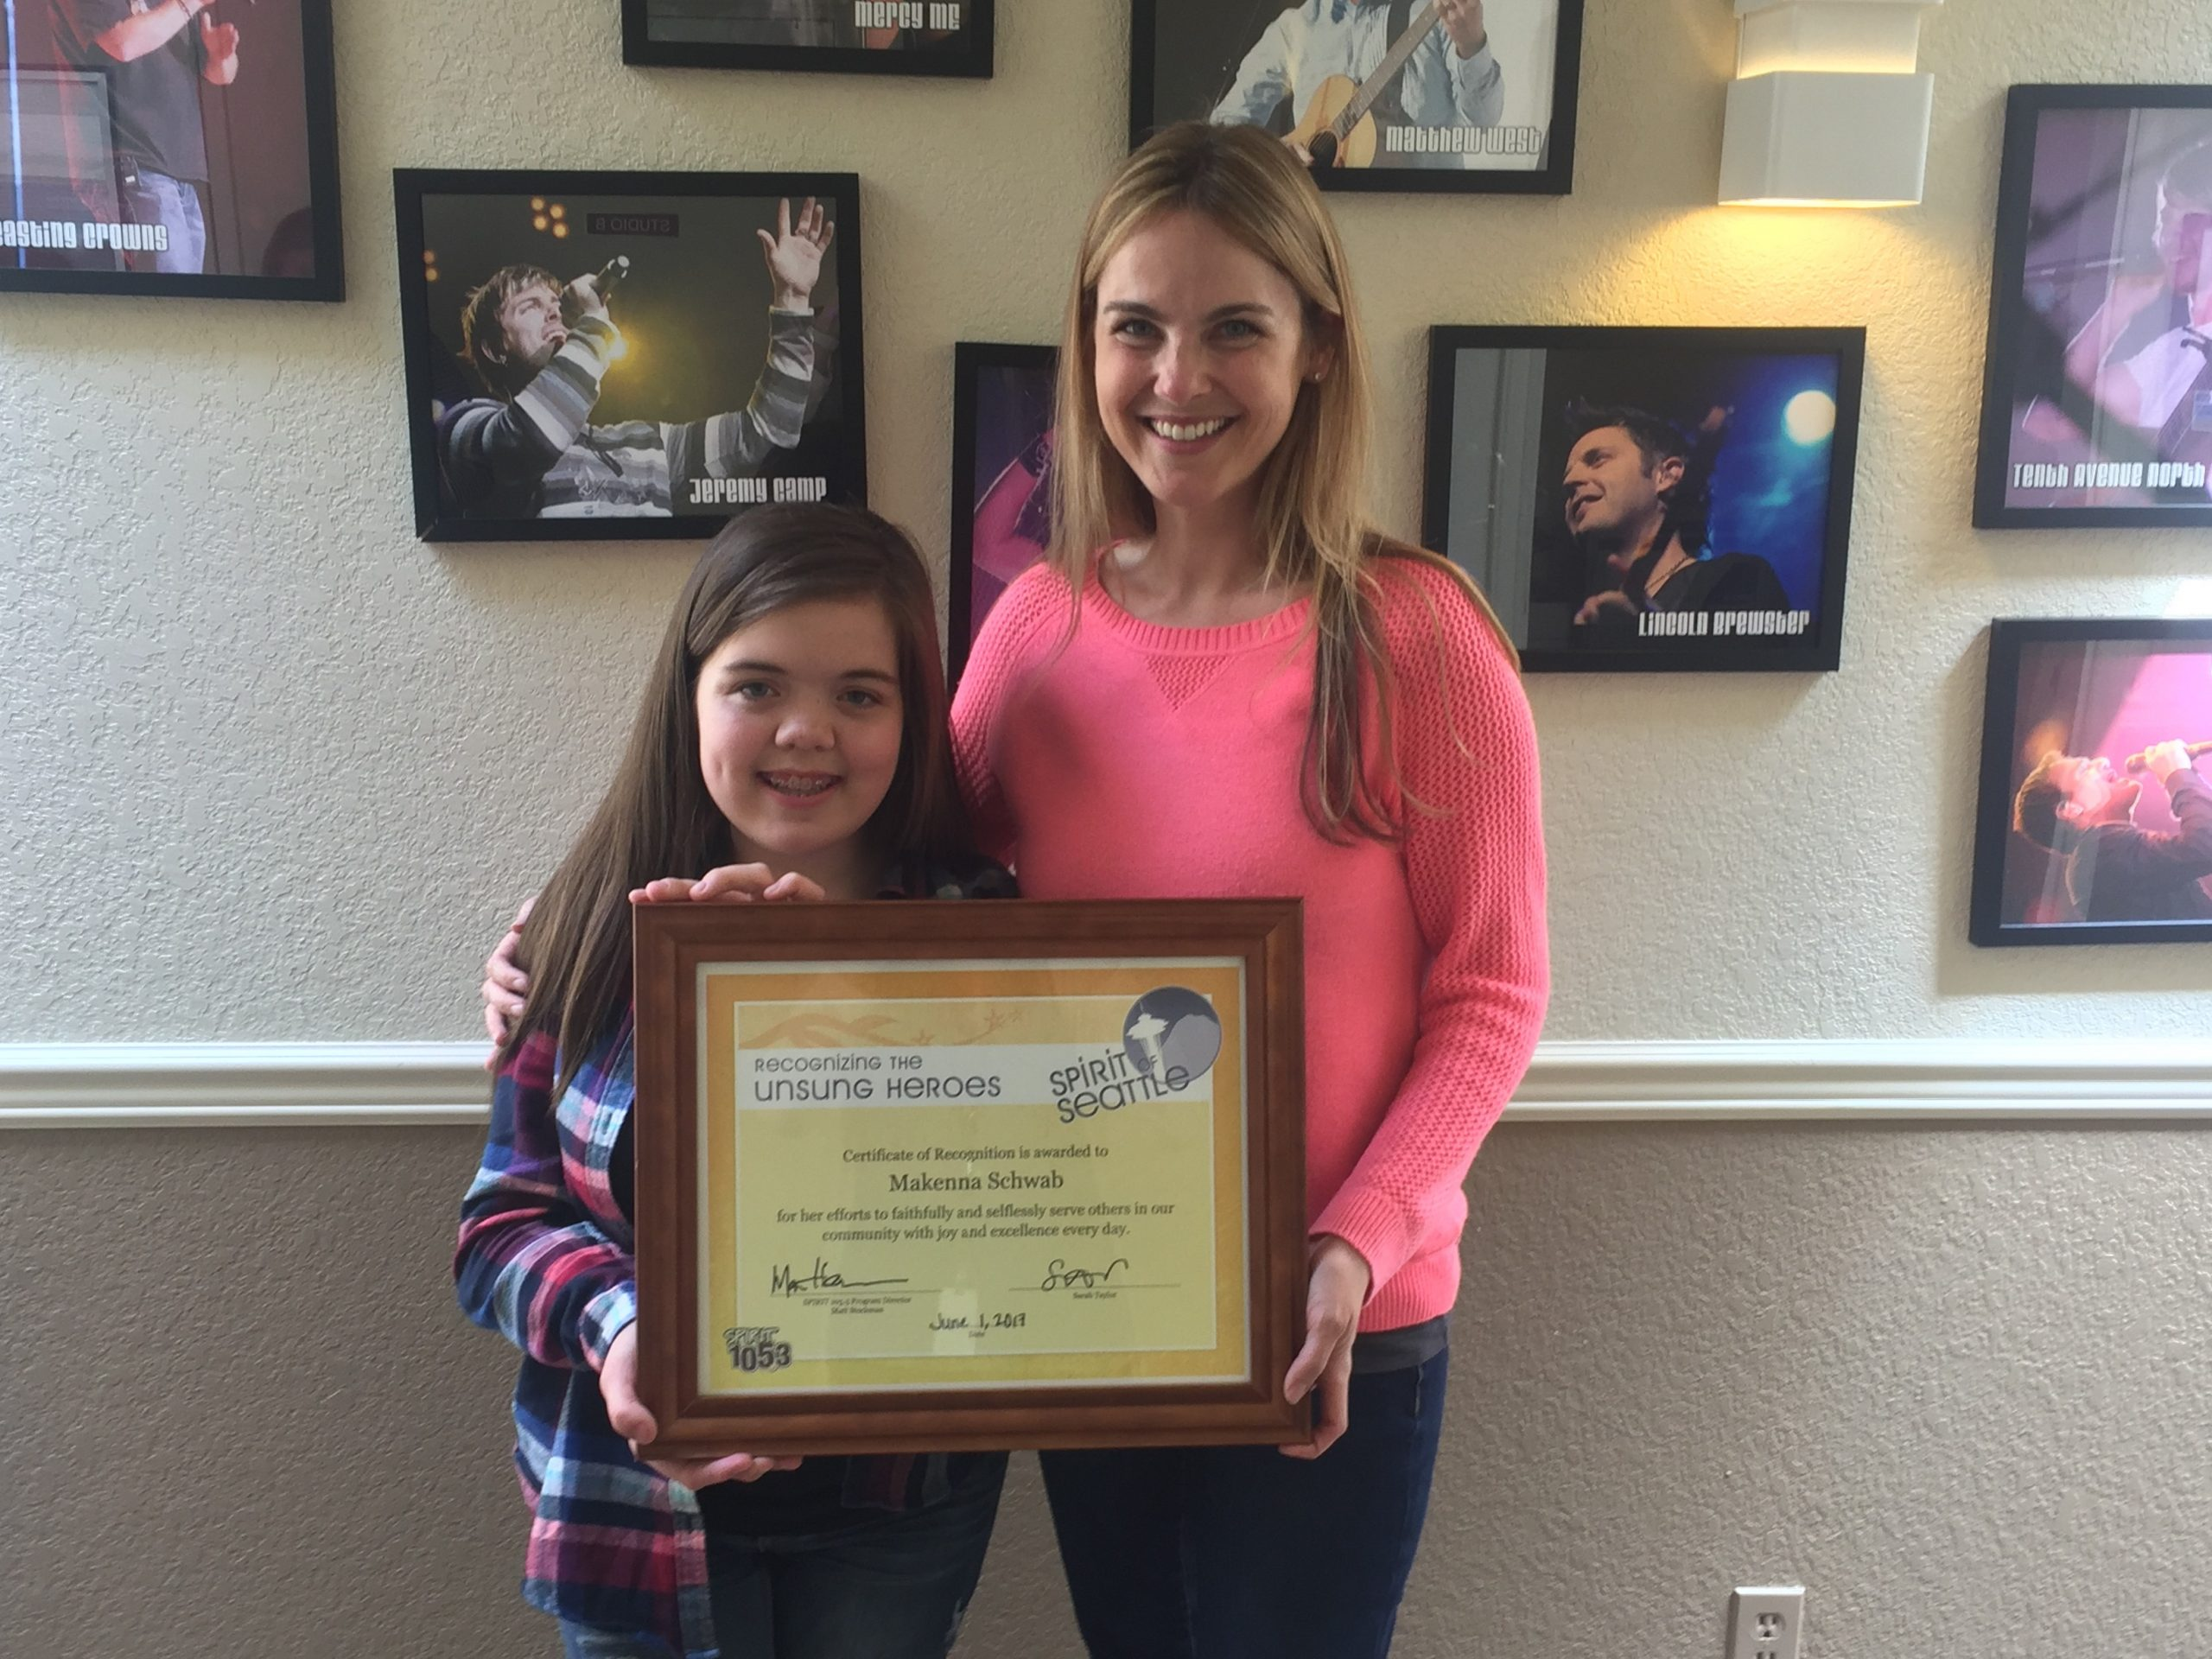 SPIRIT 105.3 Recognizes an Unsung Hero - Makenna Schwab